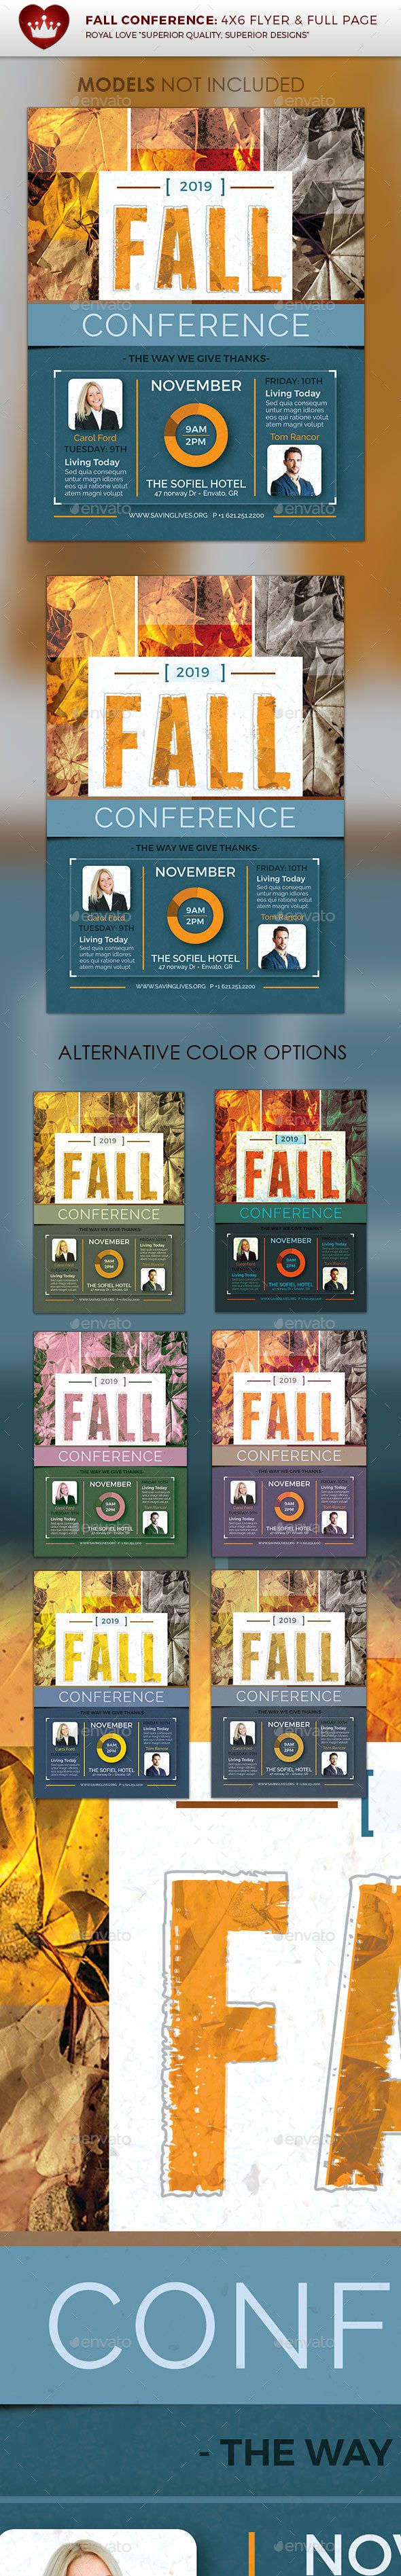 Best Autumn Graphic Design Images On   Festival Flyer